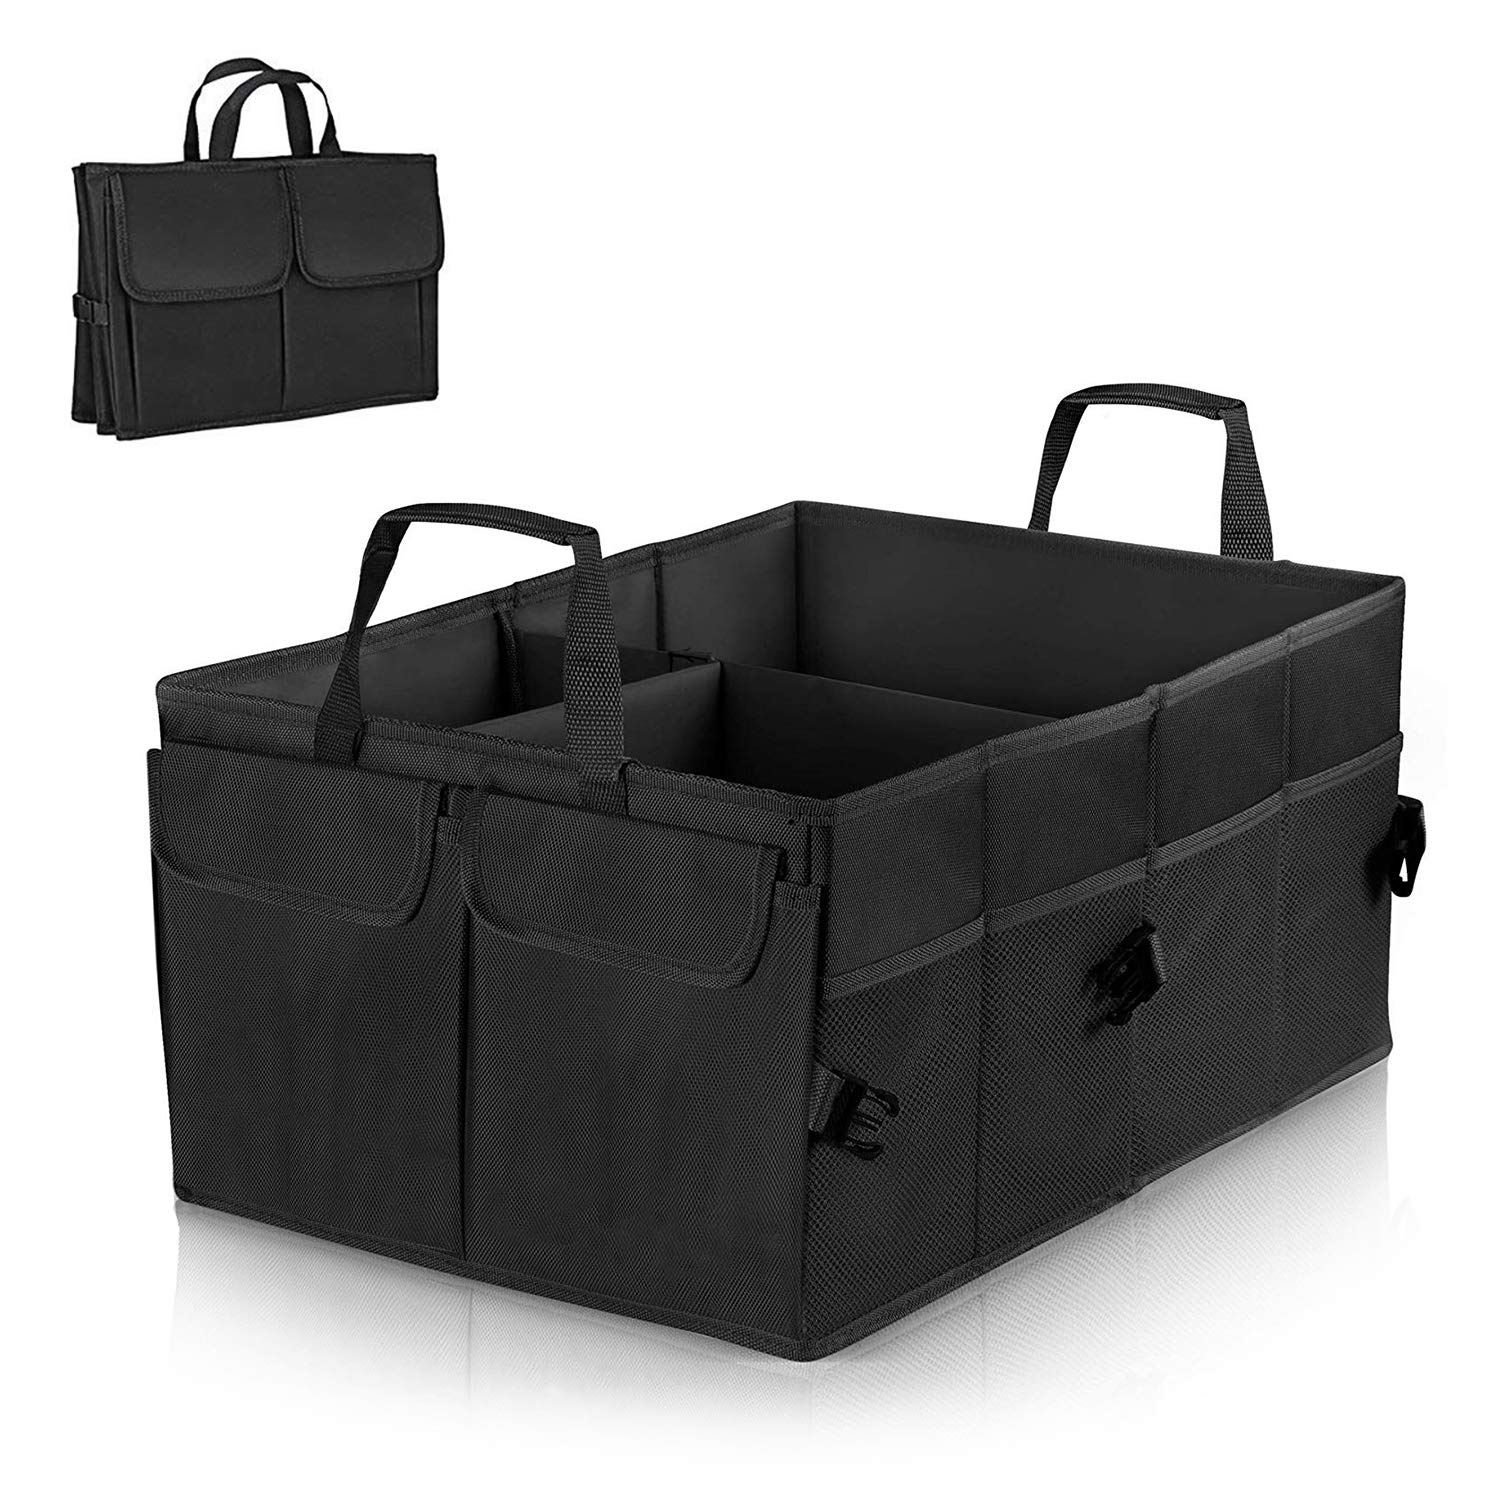 Linkax Car Boot Organiser Trunk Organiser Auto Storage Organizer Car Truck Storage Bag Car Boot Bag Foldable Oxford Fabric Trunk Storage Box for Car Truck SUV and Indoor